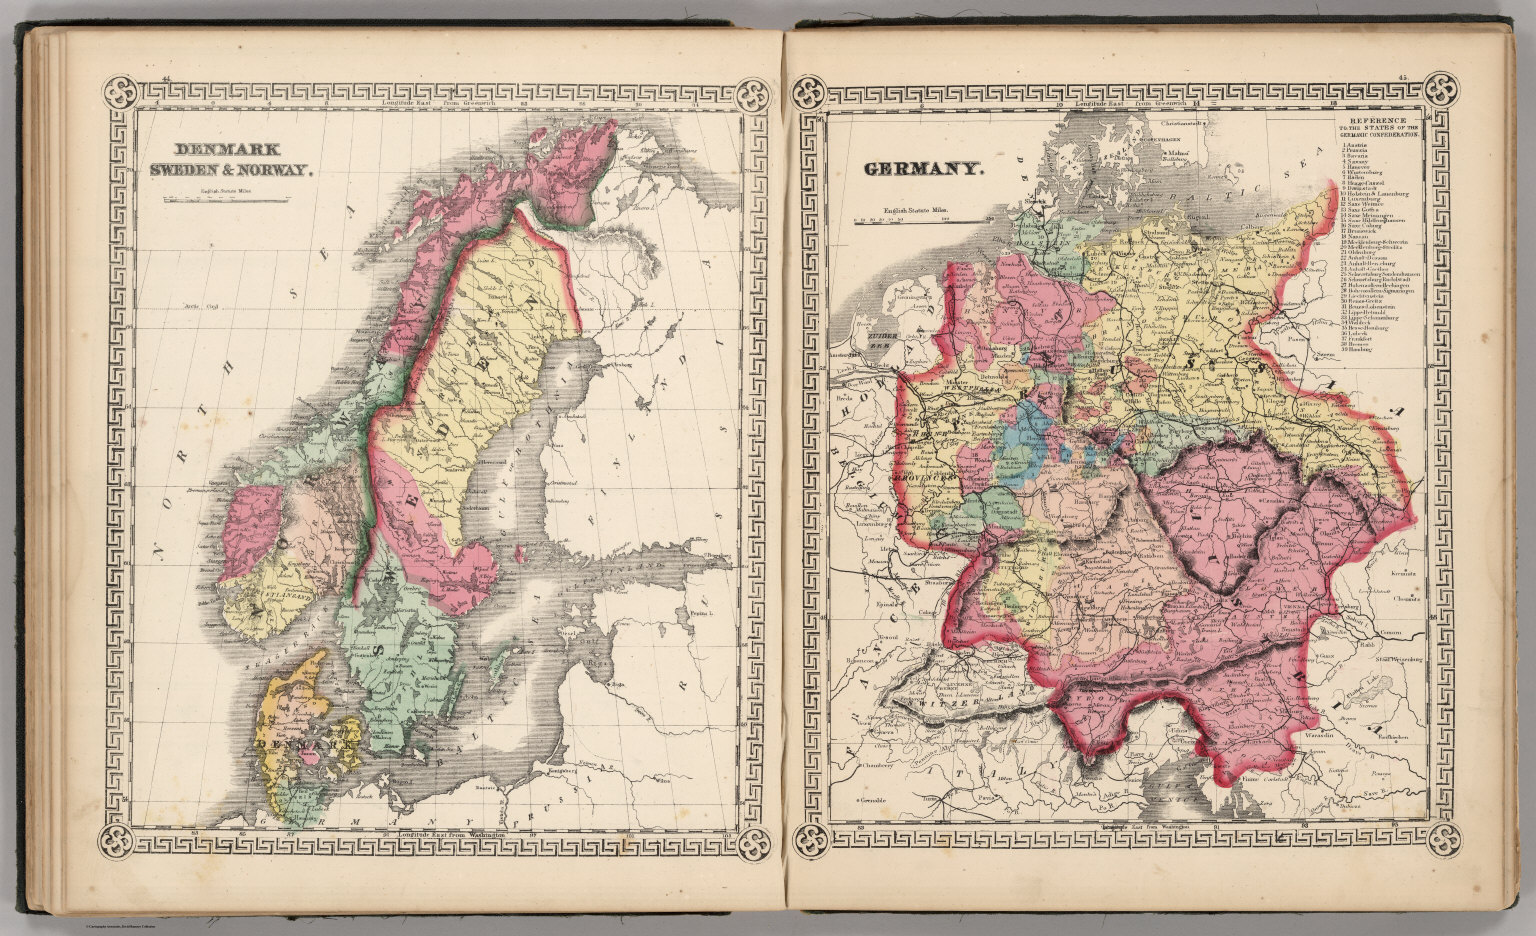 Denmark sweden and norway germany david rumsey historical map denmark sweden and norway germany gumiabroncs Choice Image